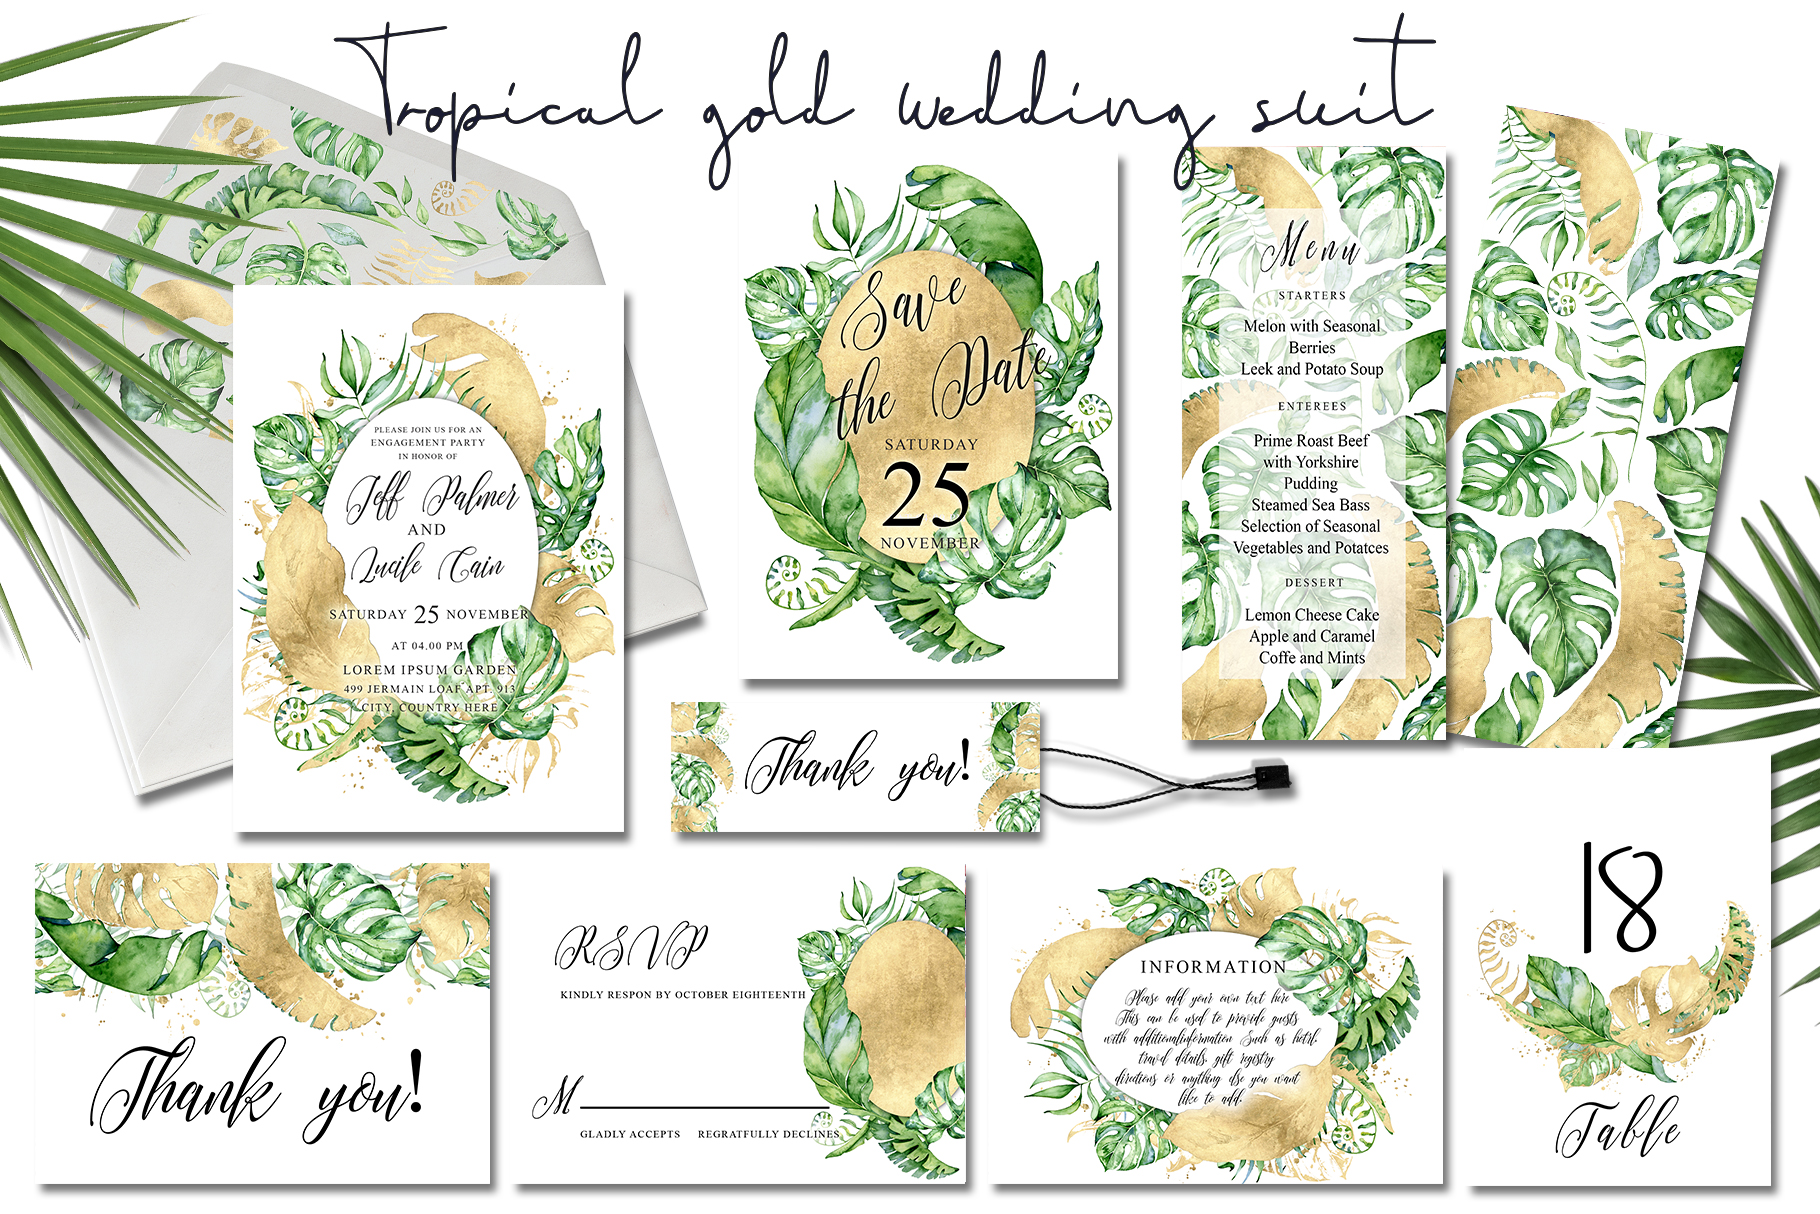 Tropical gold wedding invitation suit example image 1